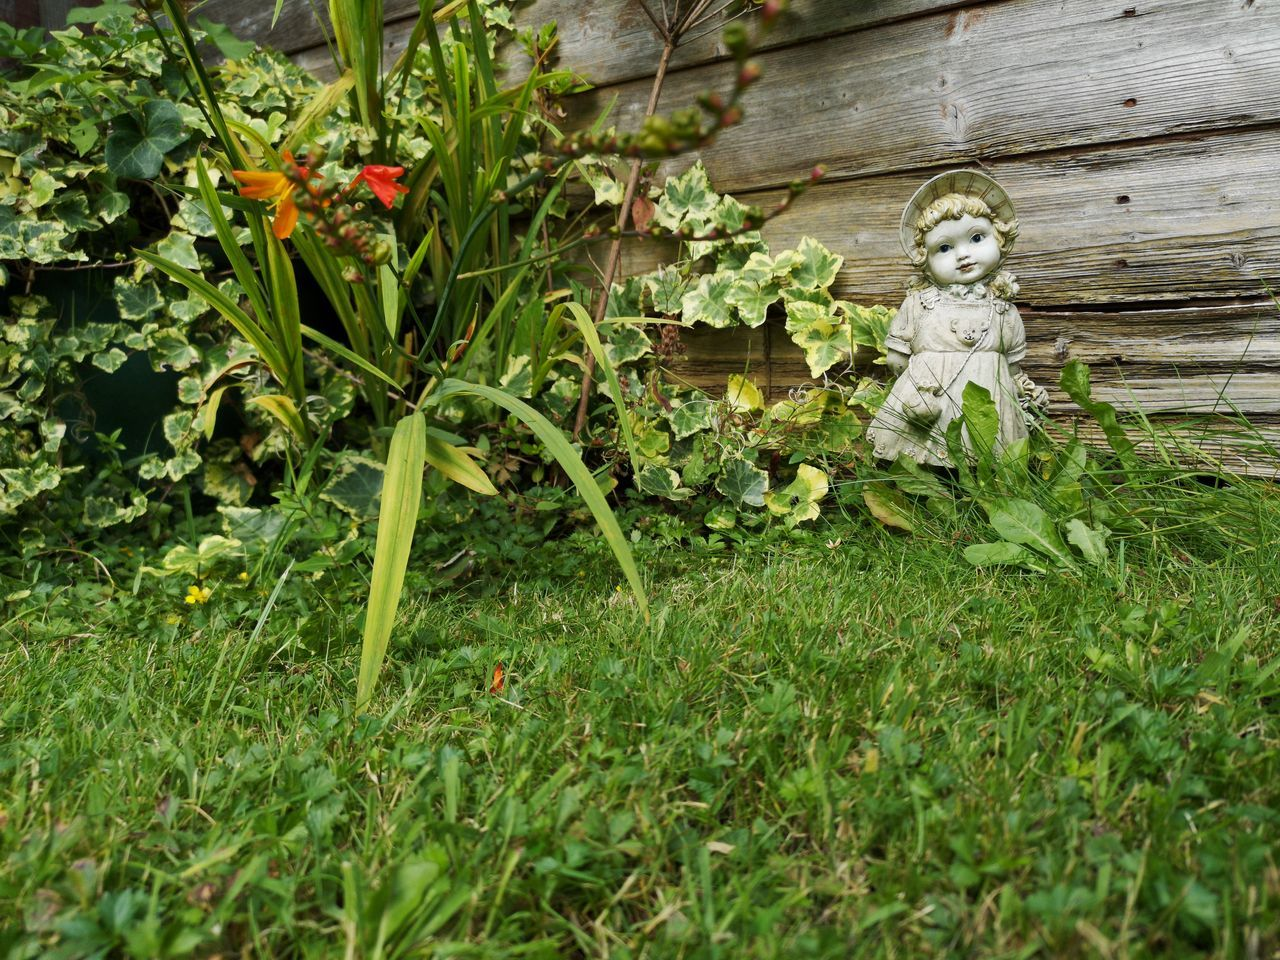 plant, growth, no people, representation, day, green color, nature, human representation, grass, land, creativity, field, leaf, outdoors, art and craft, plant part, male likeness, front or back yard, beauty in nature, sculpture